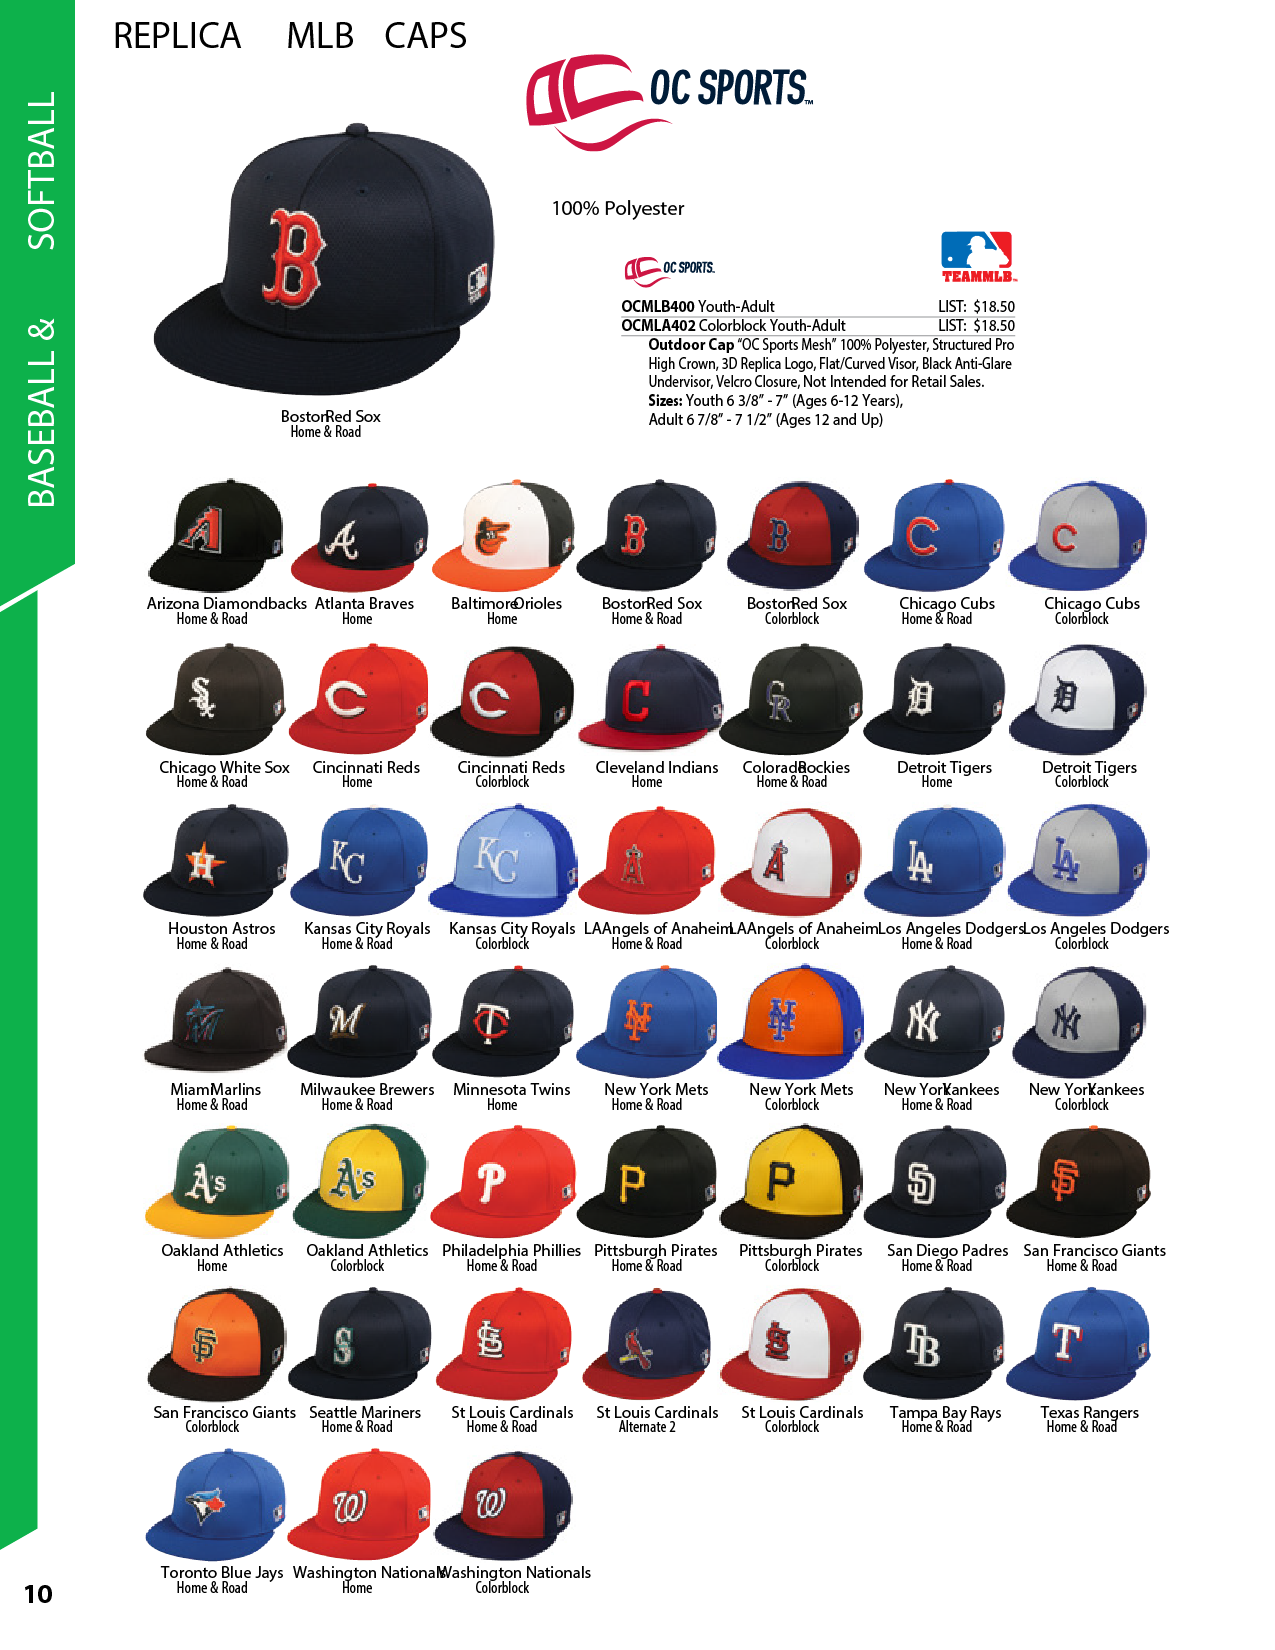 Majestic MLB400 Baseball Caps